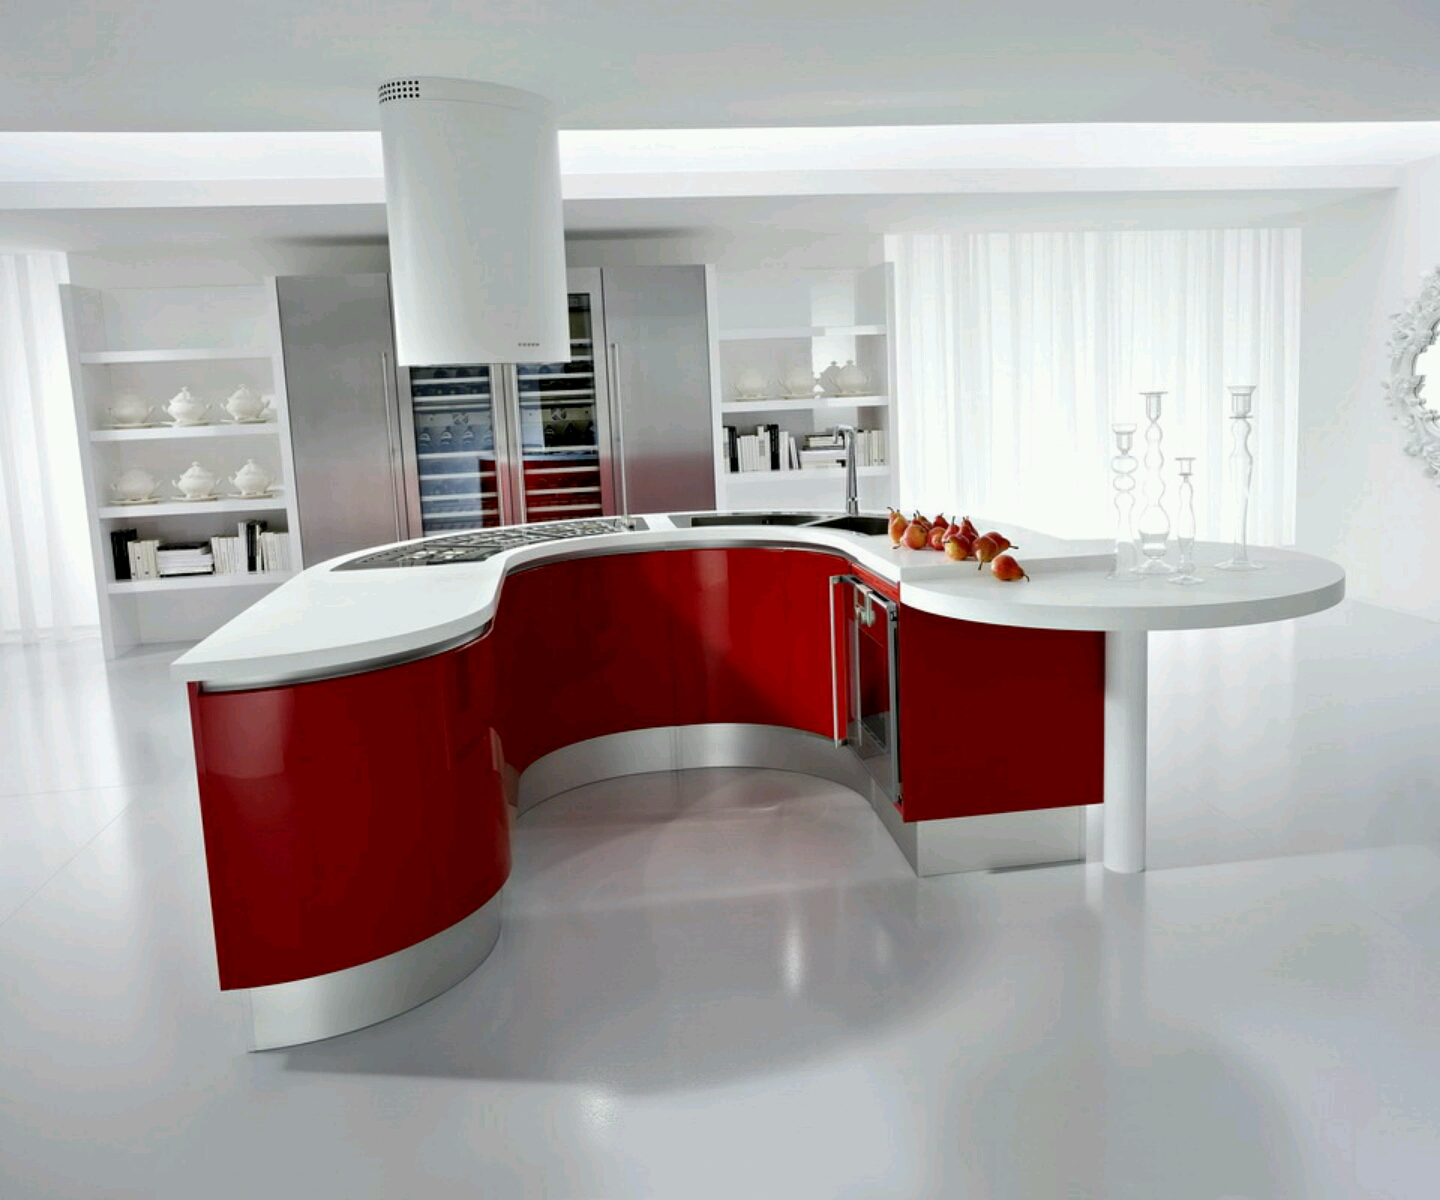 Modern kitchen cabinets designs ideas furniture gallery for Modern cupboard designs